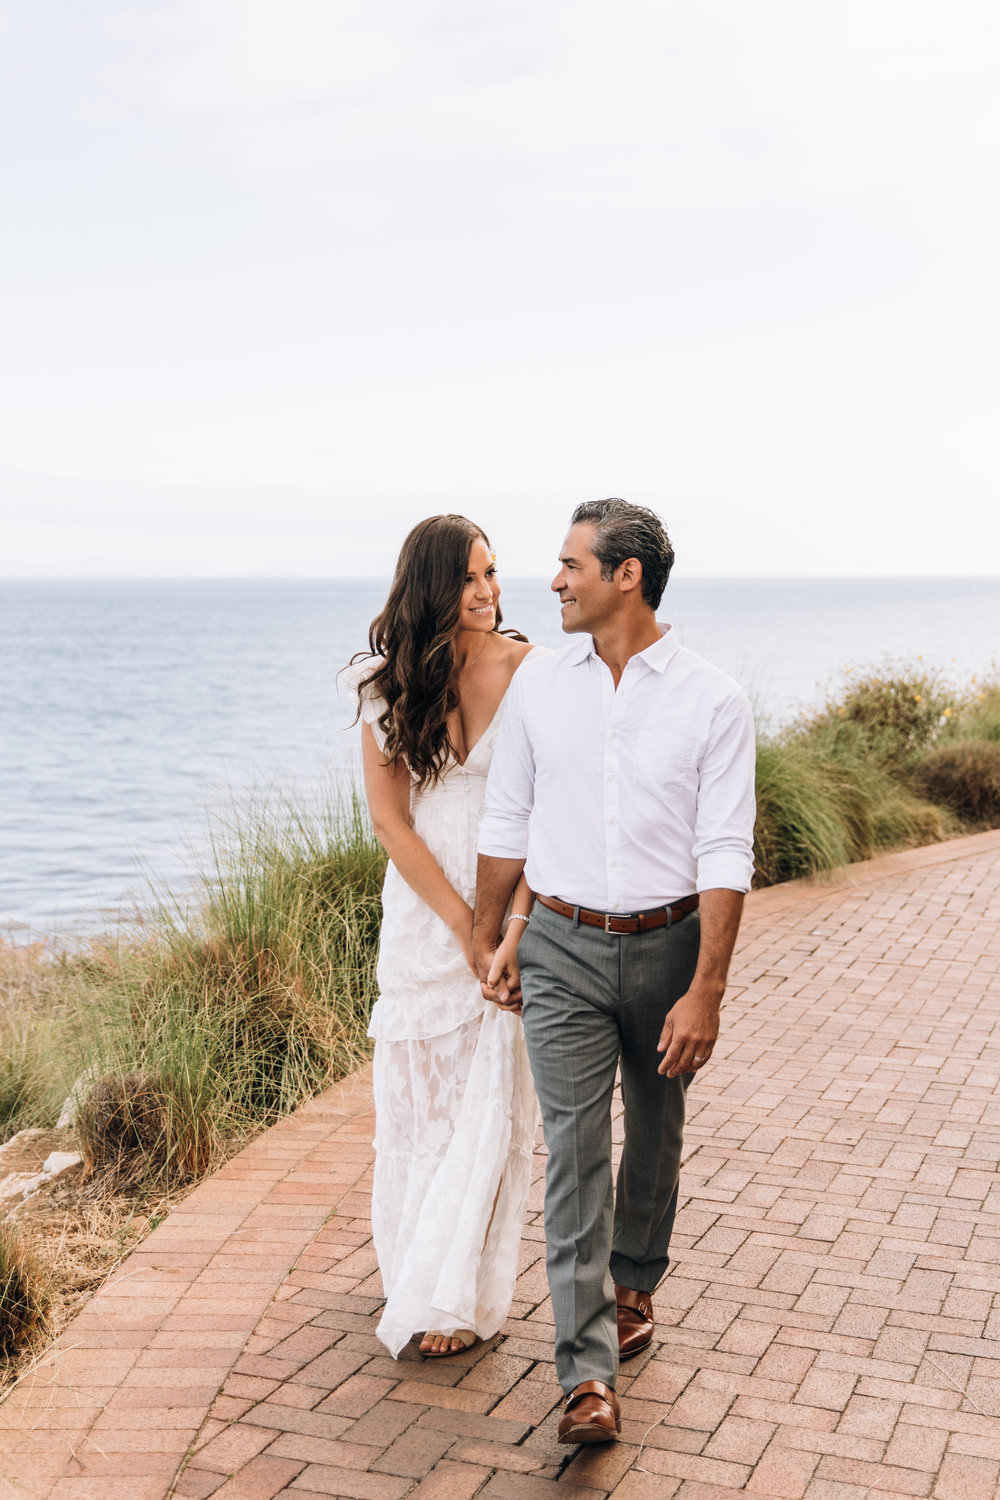 LA wedding photographer, Southern California wedding photographer, Los Angeles wedding photographer, SoCal wedding photographer, LA elopement photographer, Palos Verdes elopement photographer